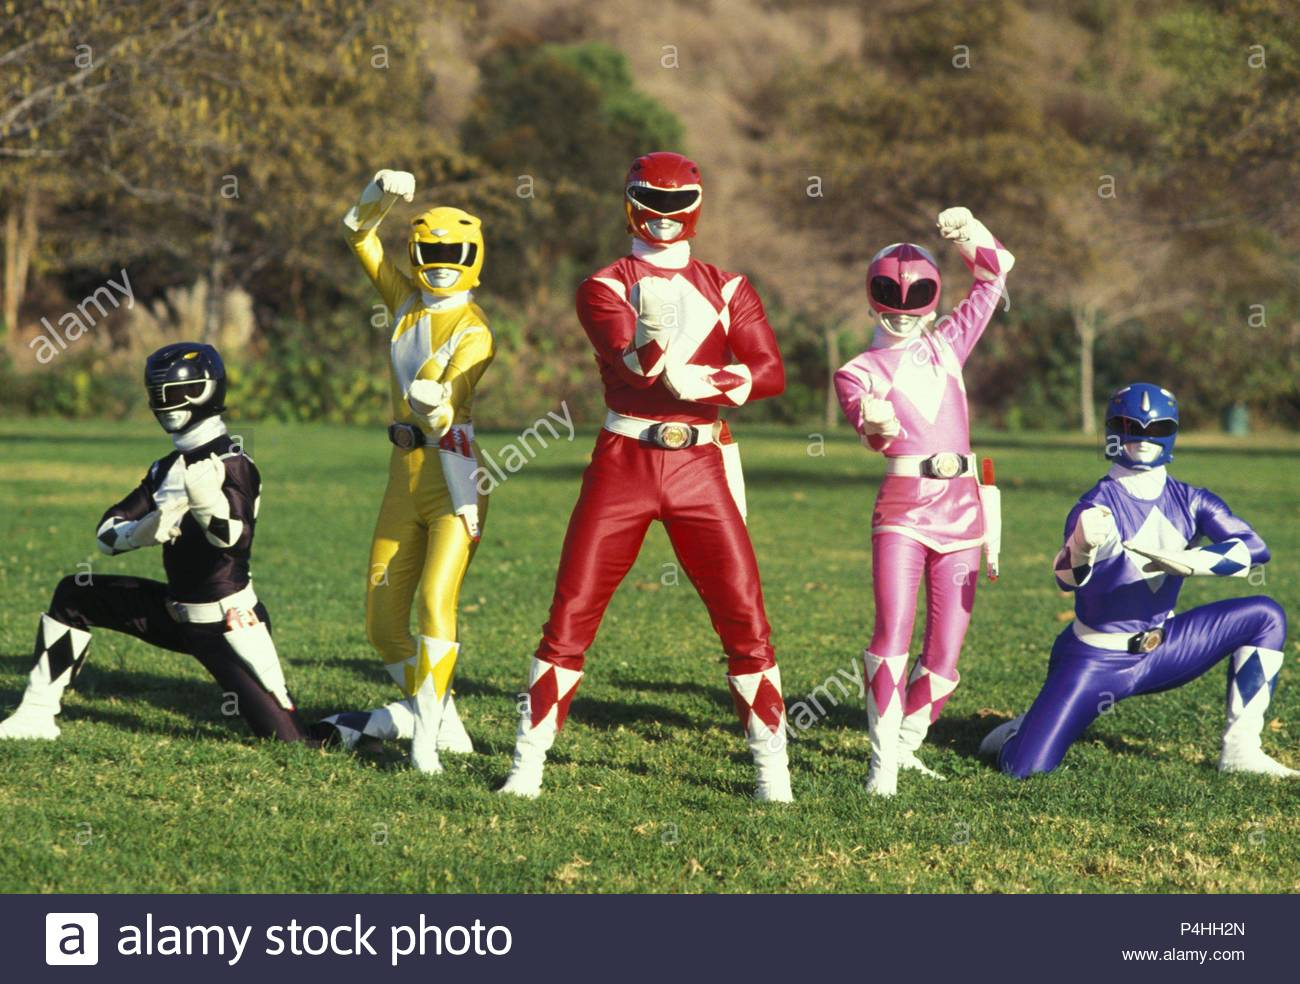 Original Film Title: MIGHTY MORPHIN POWER RANGERS.  English Title: MIGHTY MORPHIN POWER RANGERS.  Film Director: TERENCE H. WINKLESS.  Year: 1993. Credit: TOEI CO. LTD. / Album - Stock Image